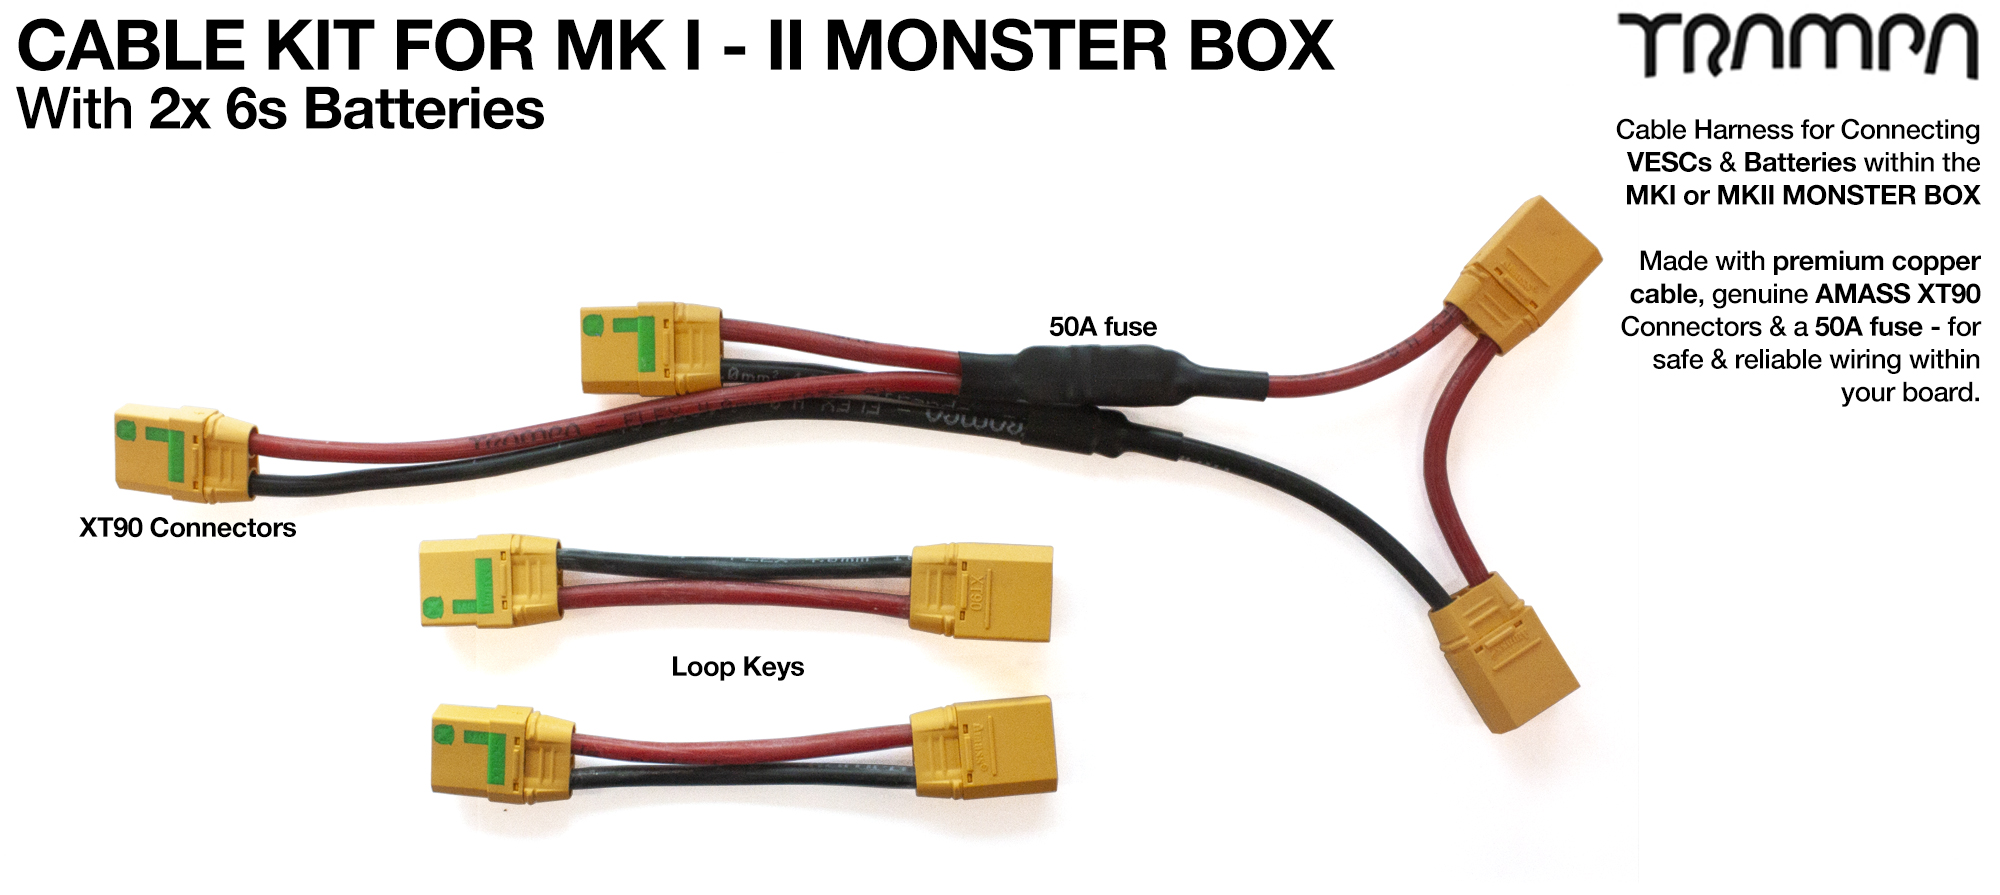 MKII Monster Box cable kit for TWIN Motor 12s1p x2   - Everything you need to plug in your board if using 2x LIPO batteries